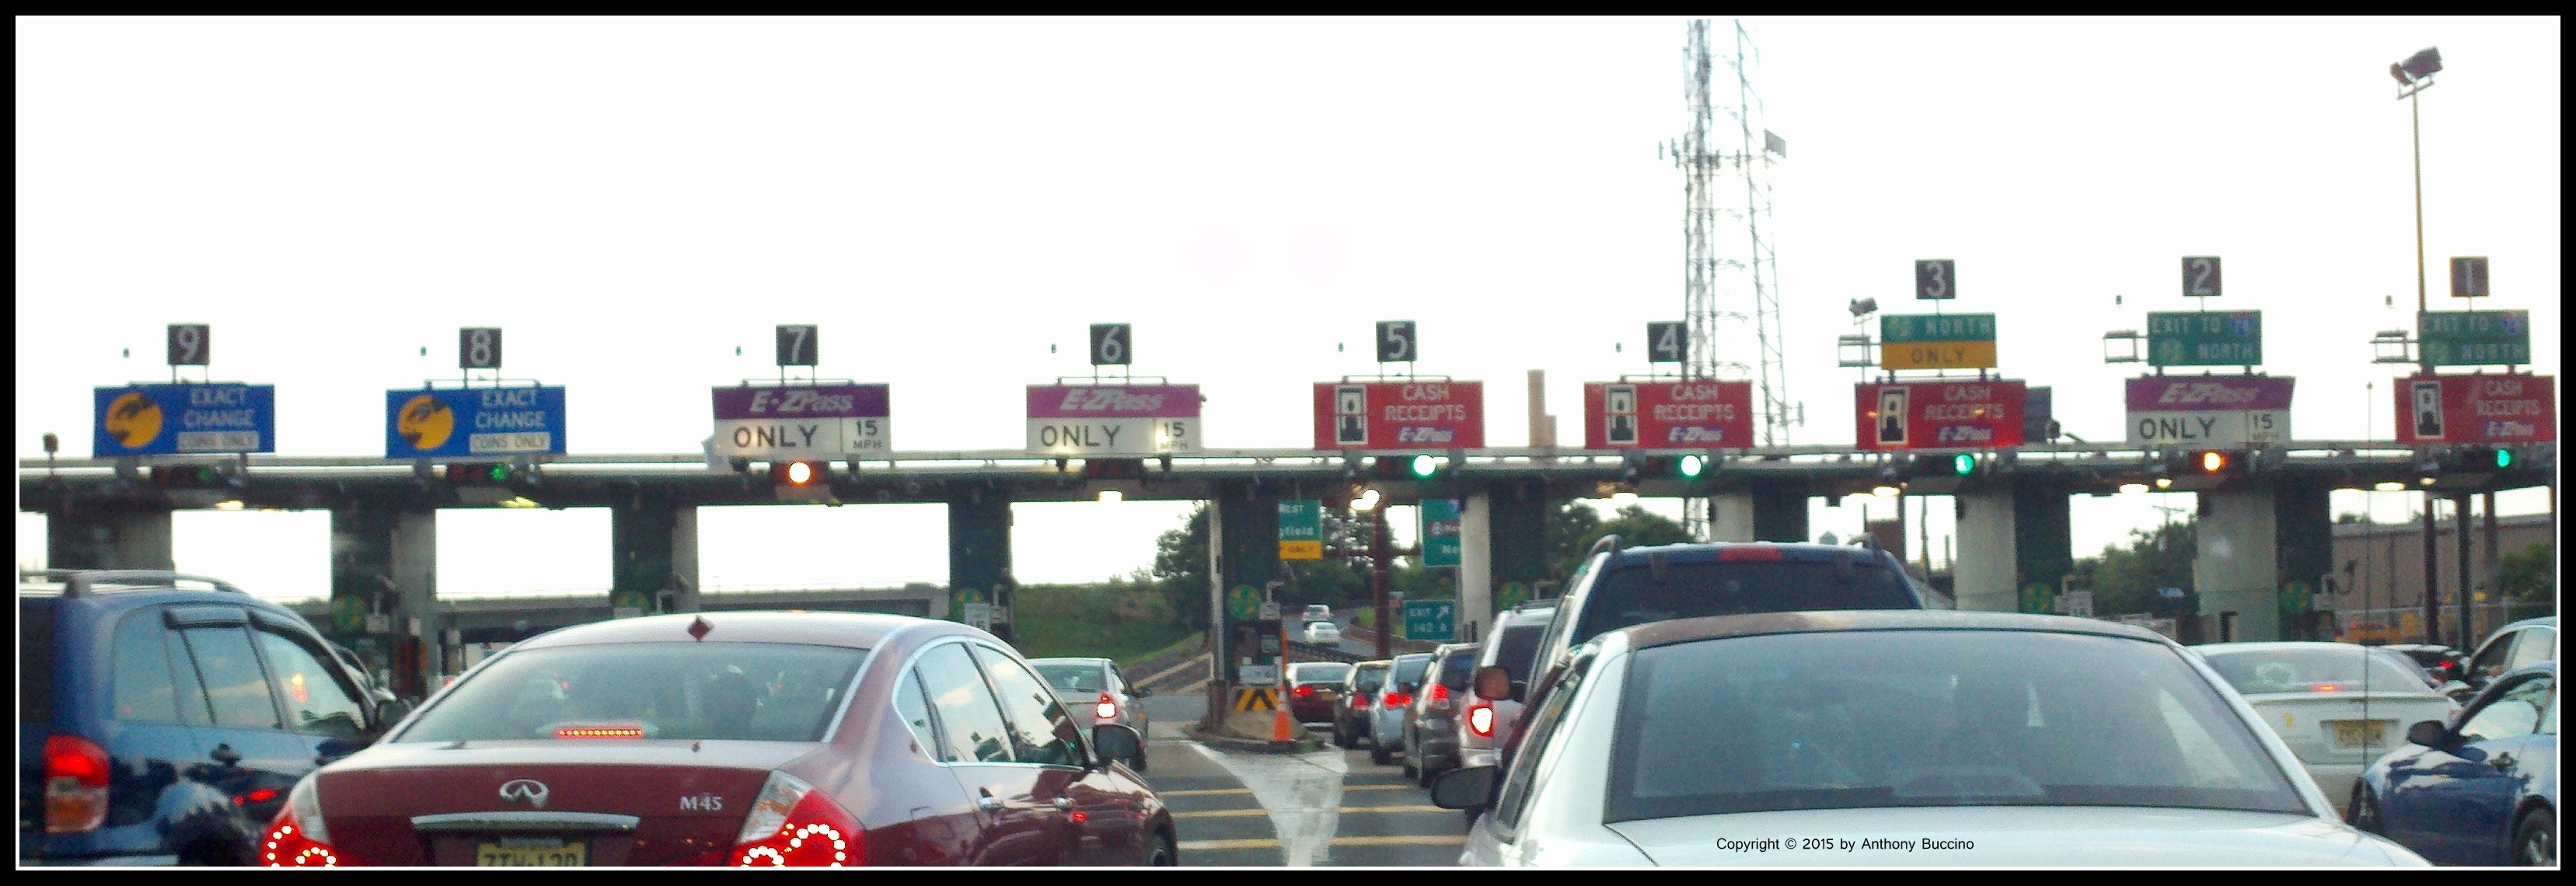 Garden State Parkway toll booth traffic jam, e-zpass